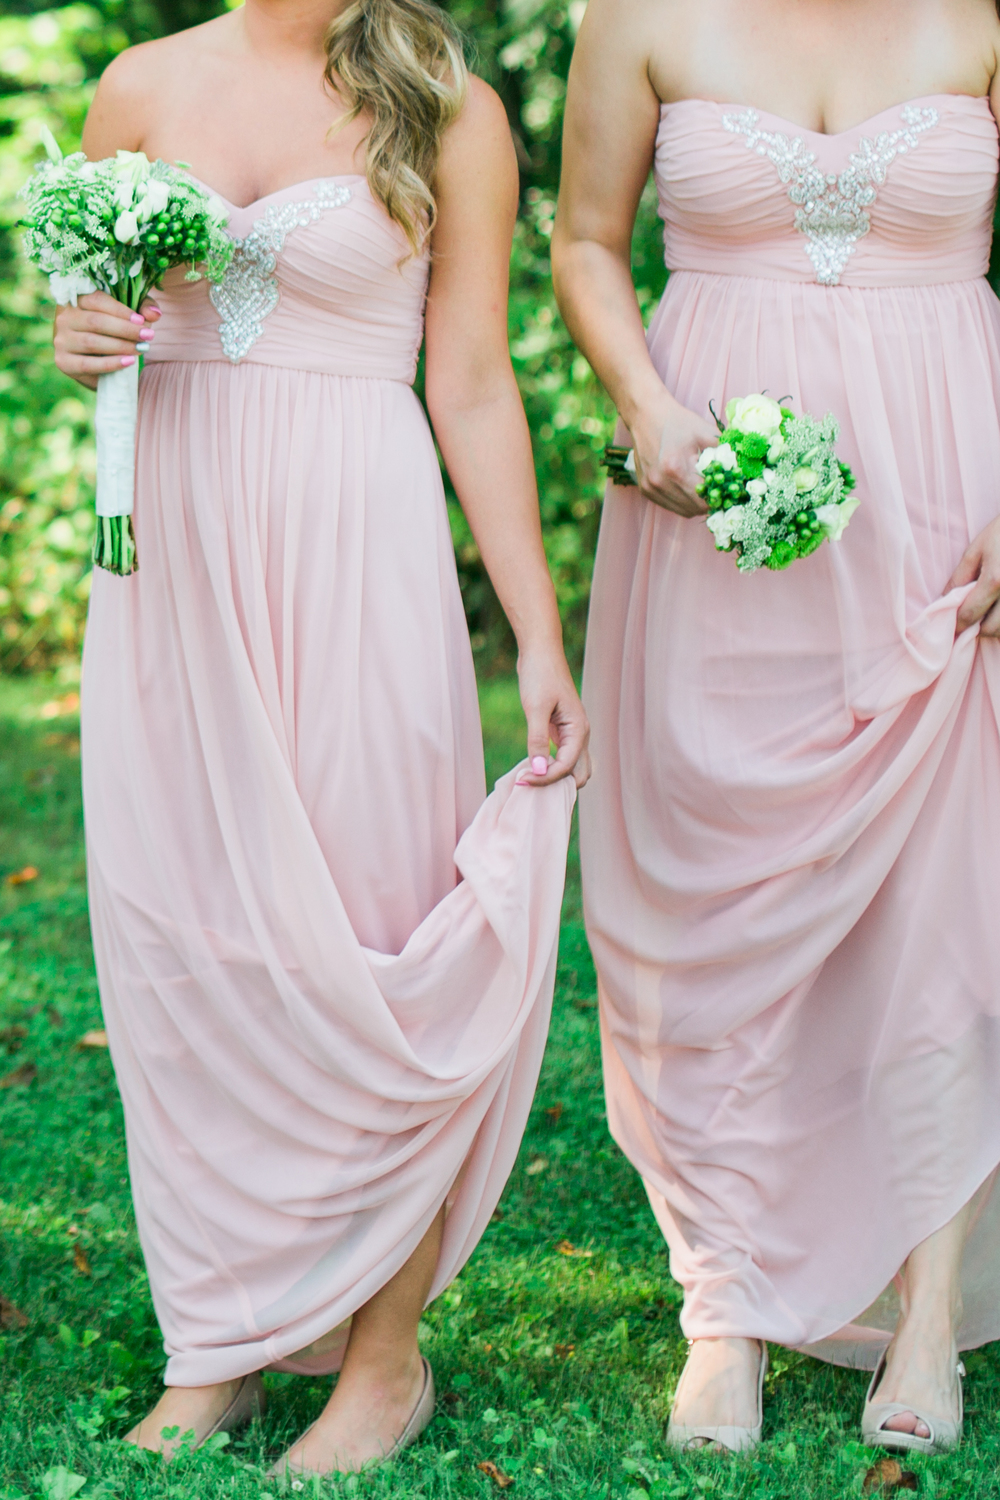 Blush bridesmaid dresses and minimalist bouquets for wedding at Echo Valley in Wisconsin